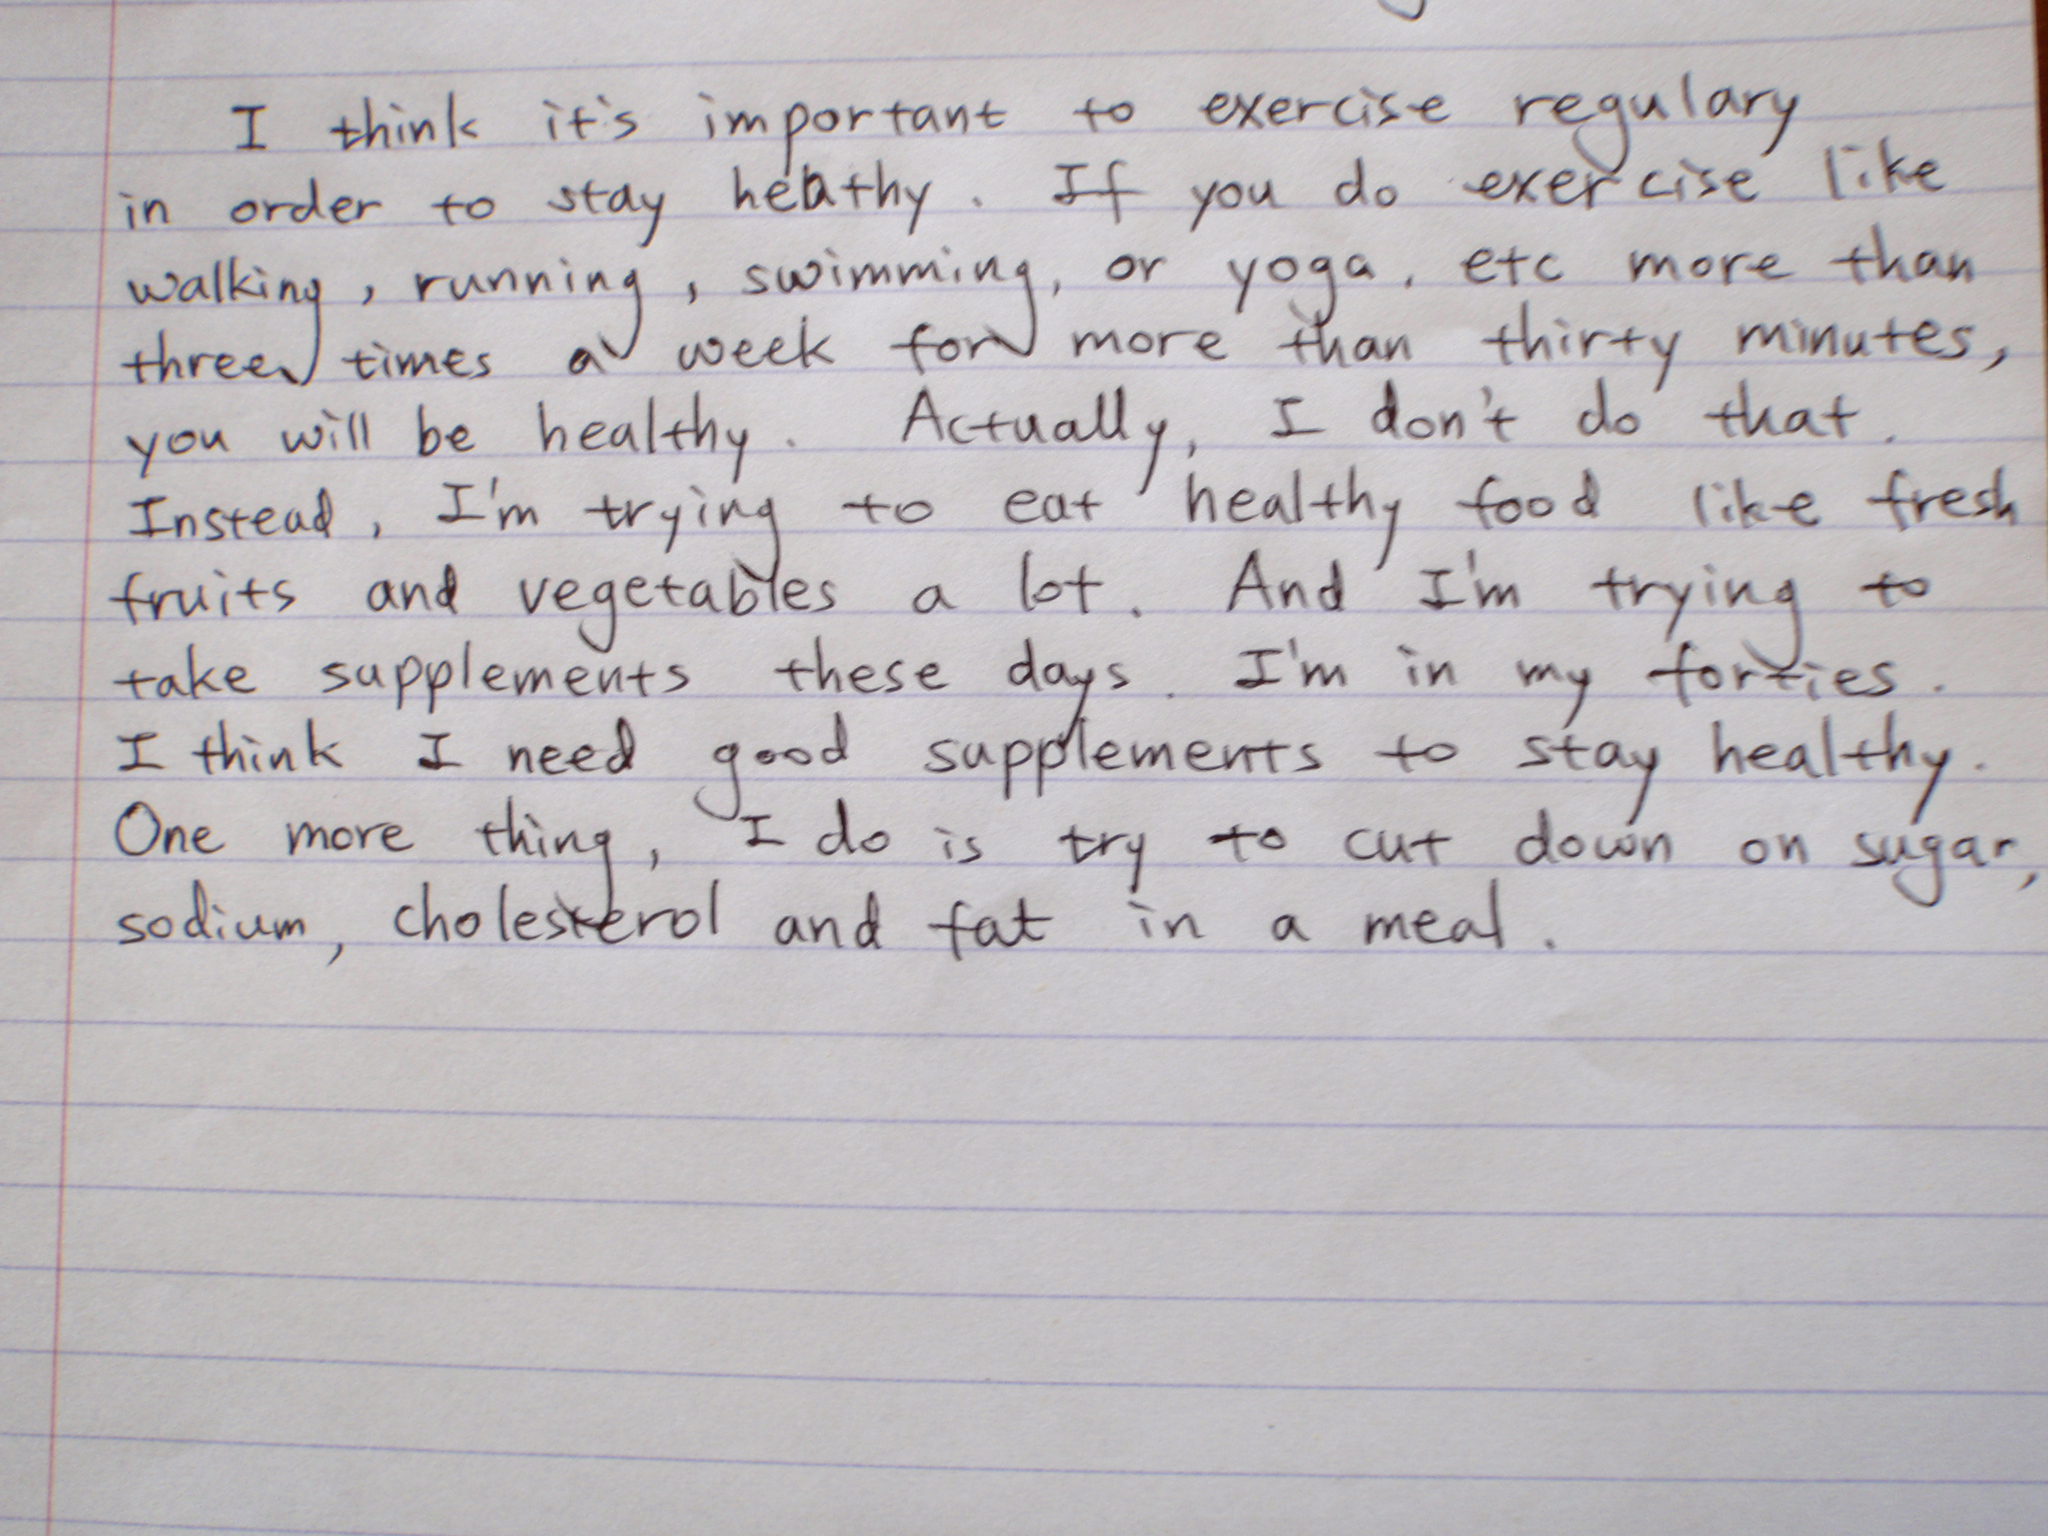 essay on healthy lifestyle Healthy lifestyle essay everyone has a different perspective on what a healthy  lifestyle is, but it really comes down to practicing good health habits and giving.